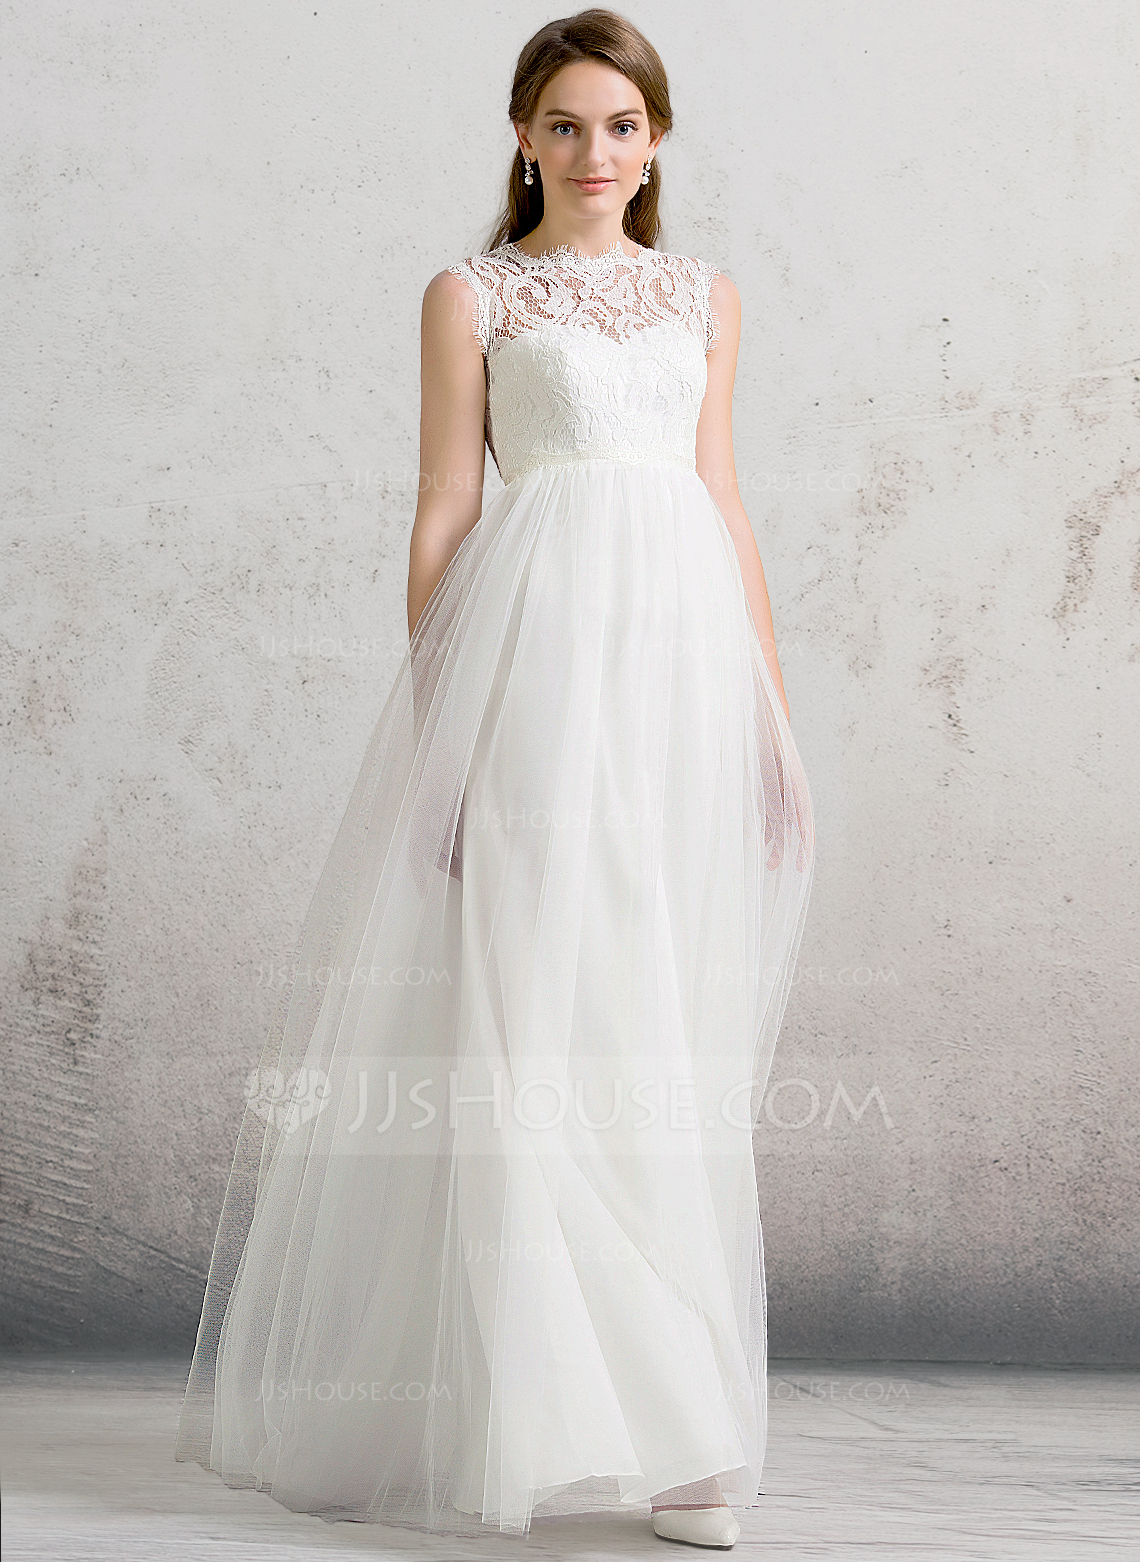 A LinePrincess Scoop Neck Floor Length Tulle Wedding